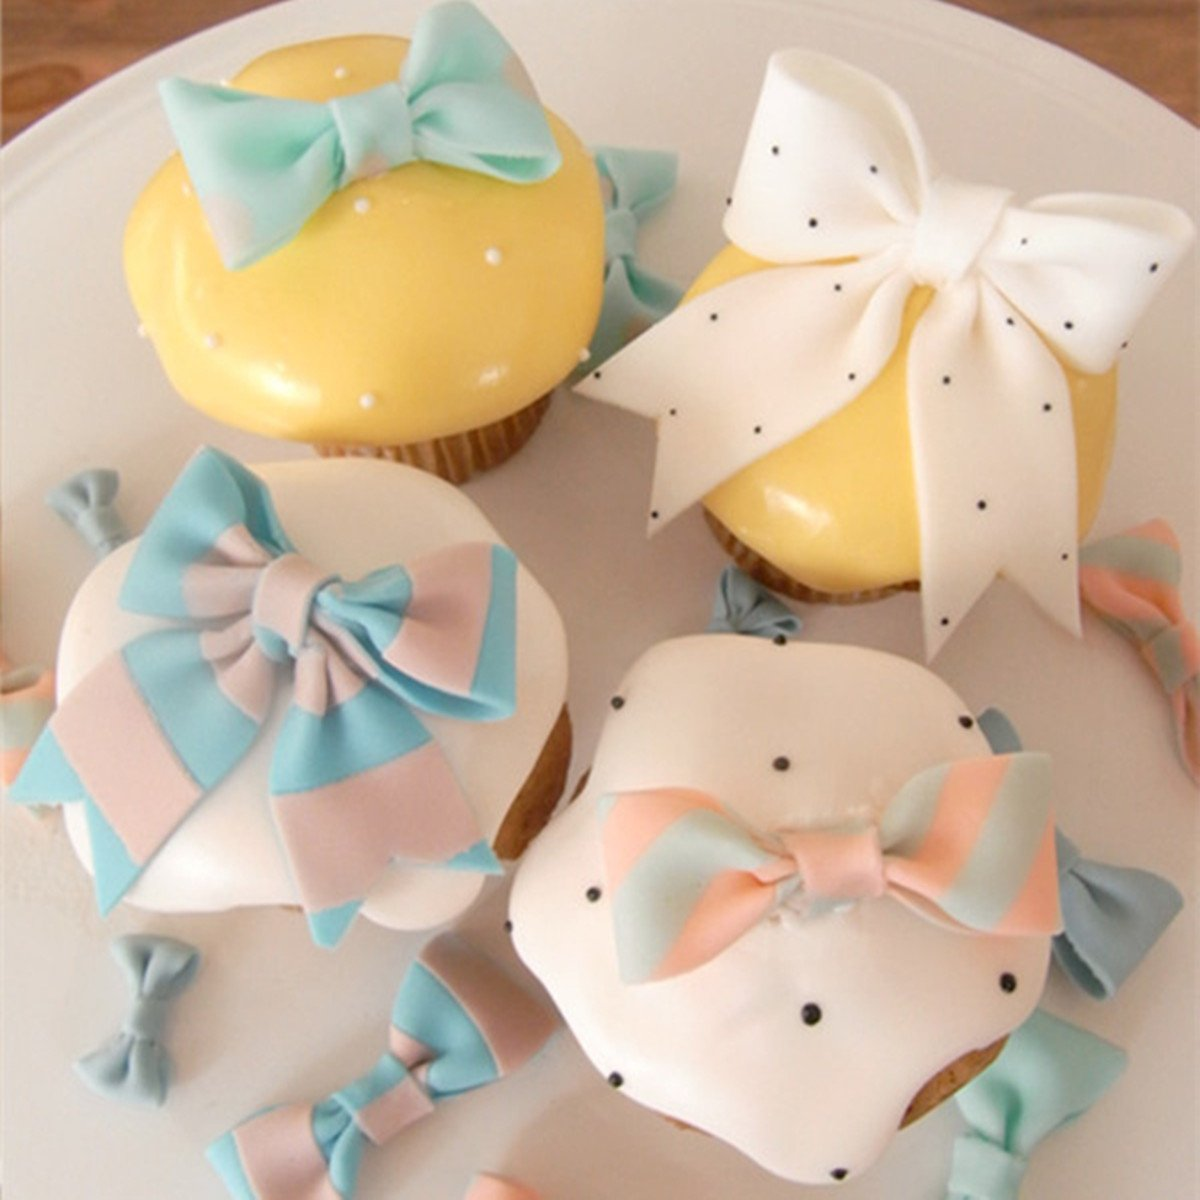 ribbon bowknot bow tie cutter set cookie impression mold plastic cutter fondant sugar paste cutter gum paste Modelling Tools for Cake Cupcake Toppers Decoration Pack of 3 by Anyana (Image #3)